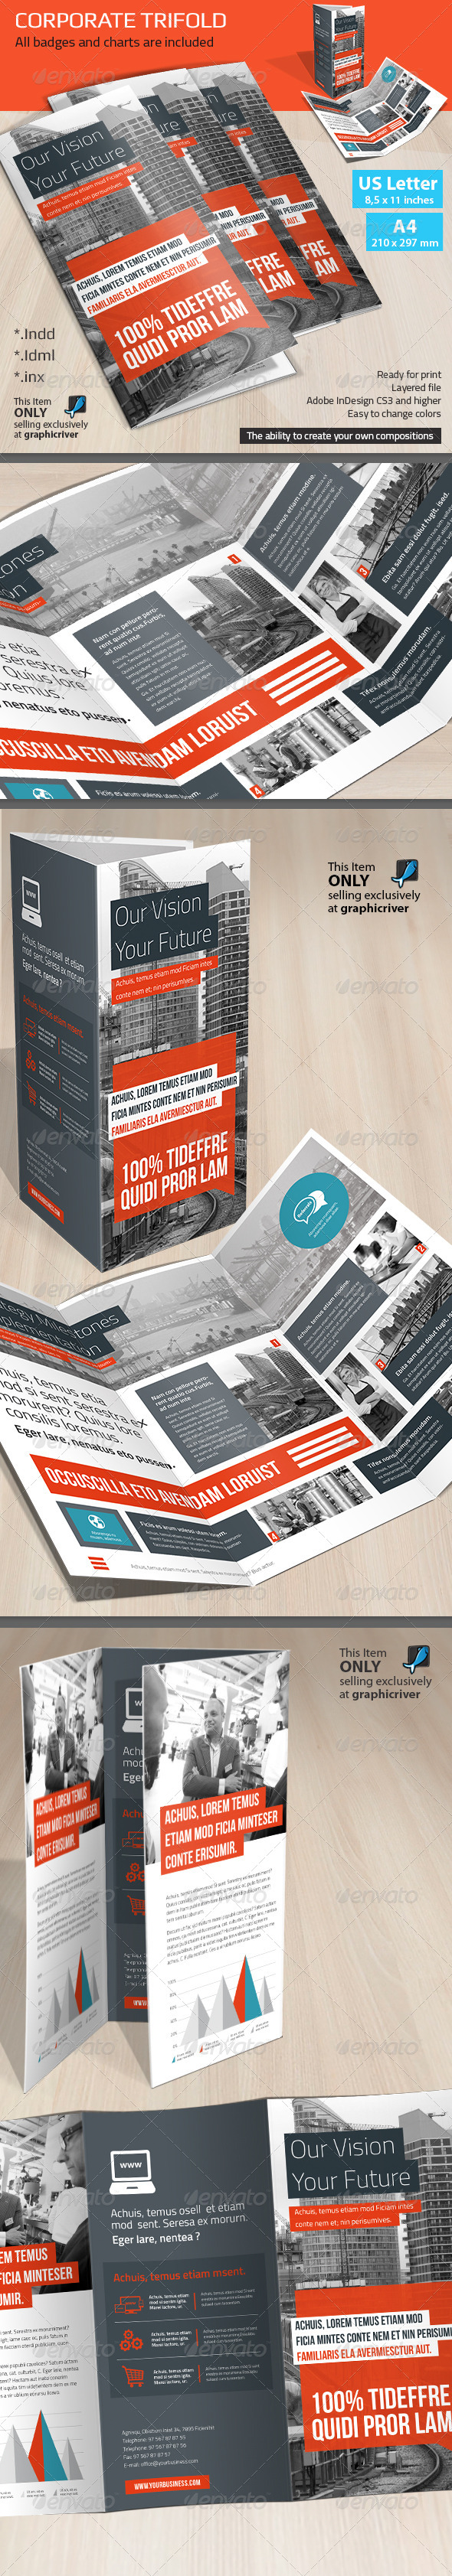 GraphicRiver Corporate Tri-fold Brochure Vol 8 8295931